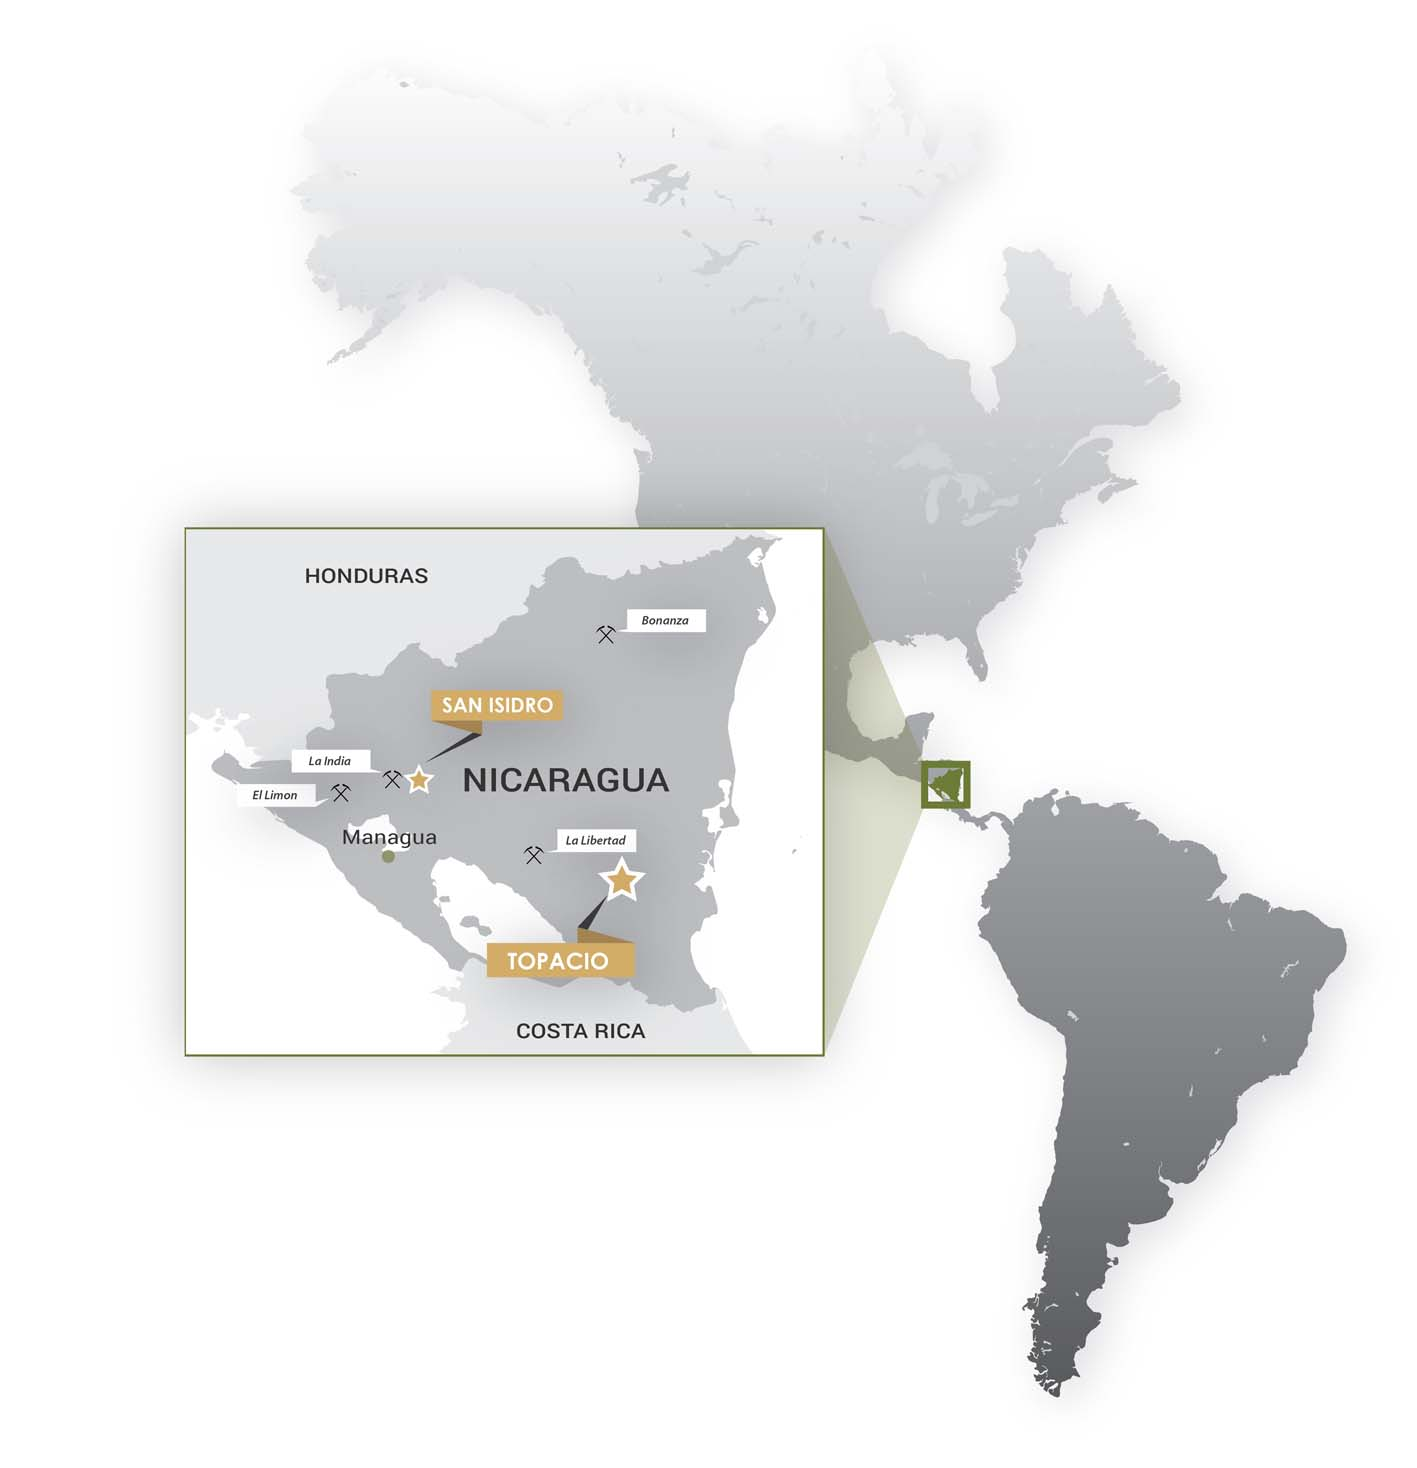 americas_nica_focus_map_ovl_projects_-_small.jpg